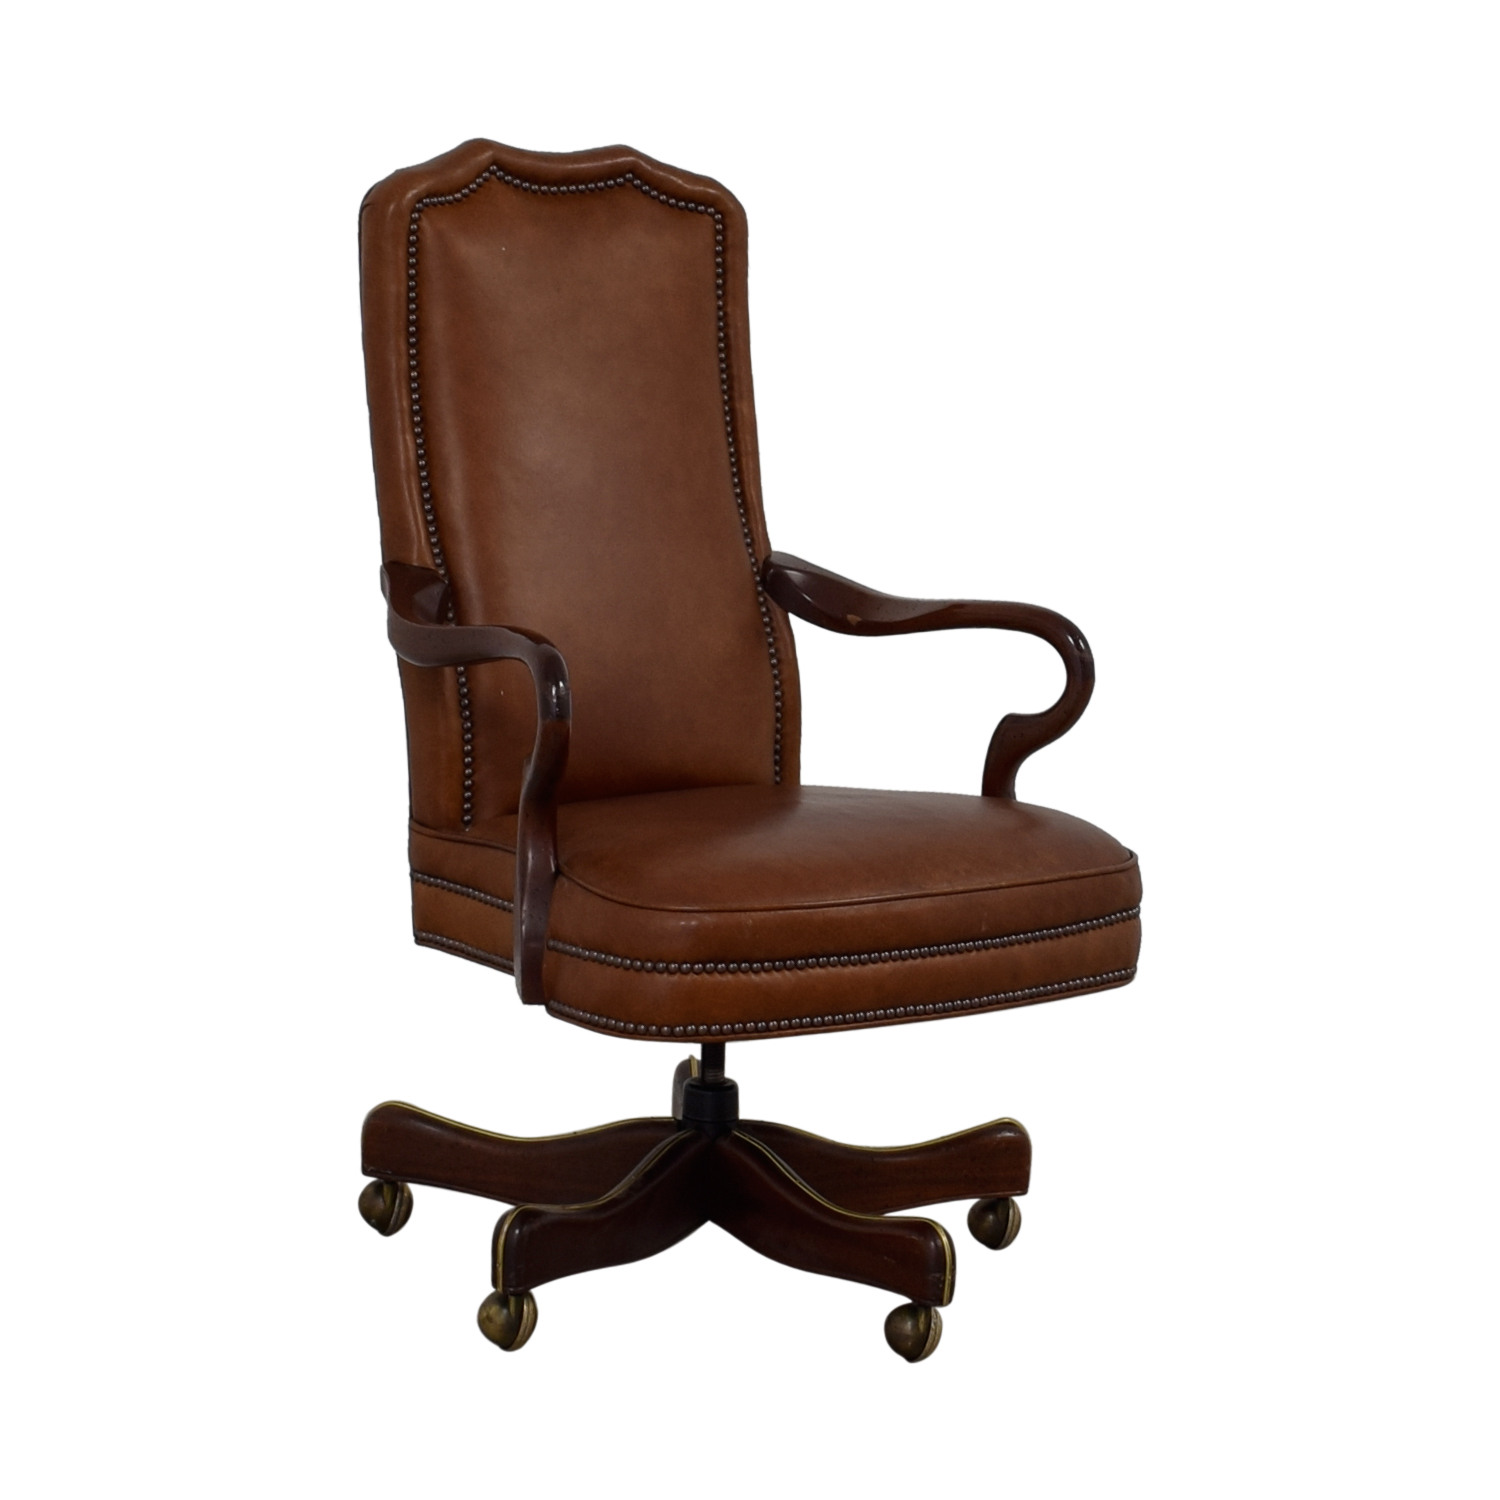 Super 71 Off Charles Stewart Charles Stewart Company Brown Leather Desk Chair Chairs Pabps2019 Chair Design Images Pabps2019Com